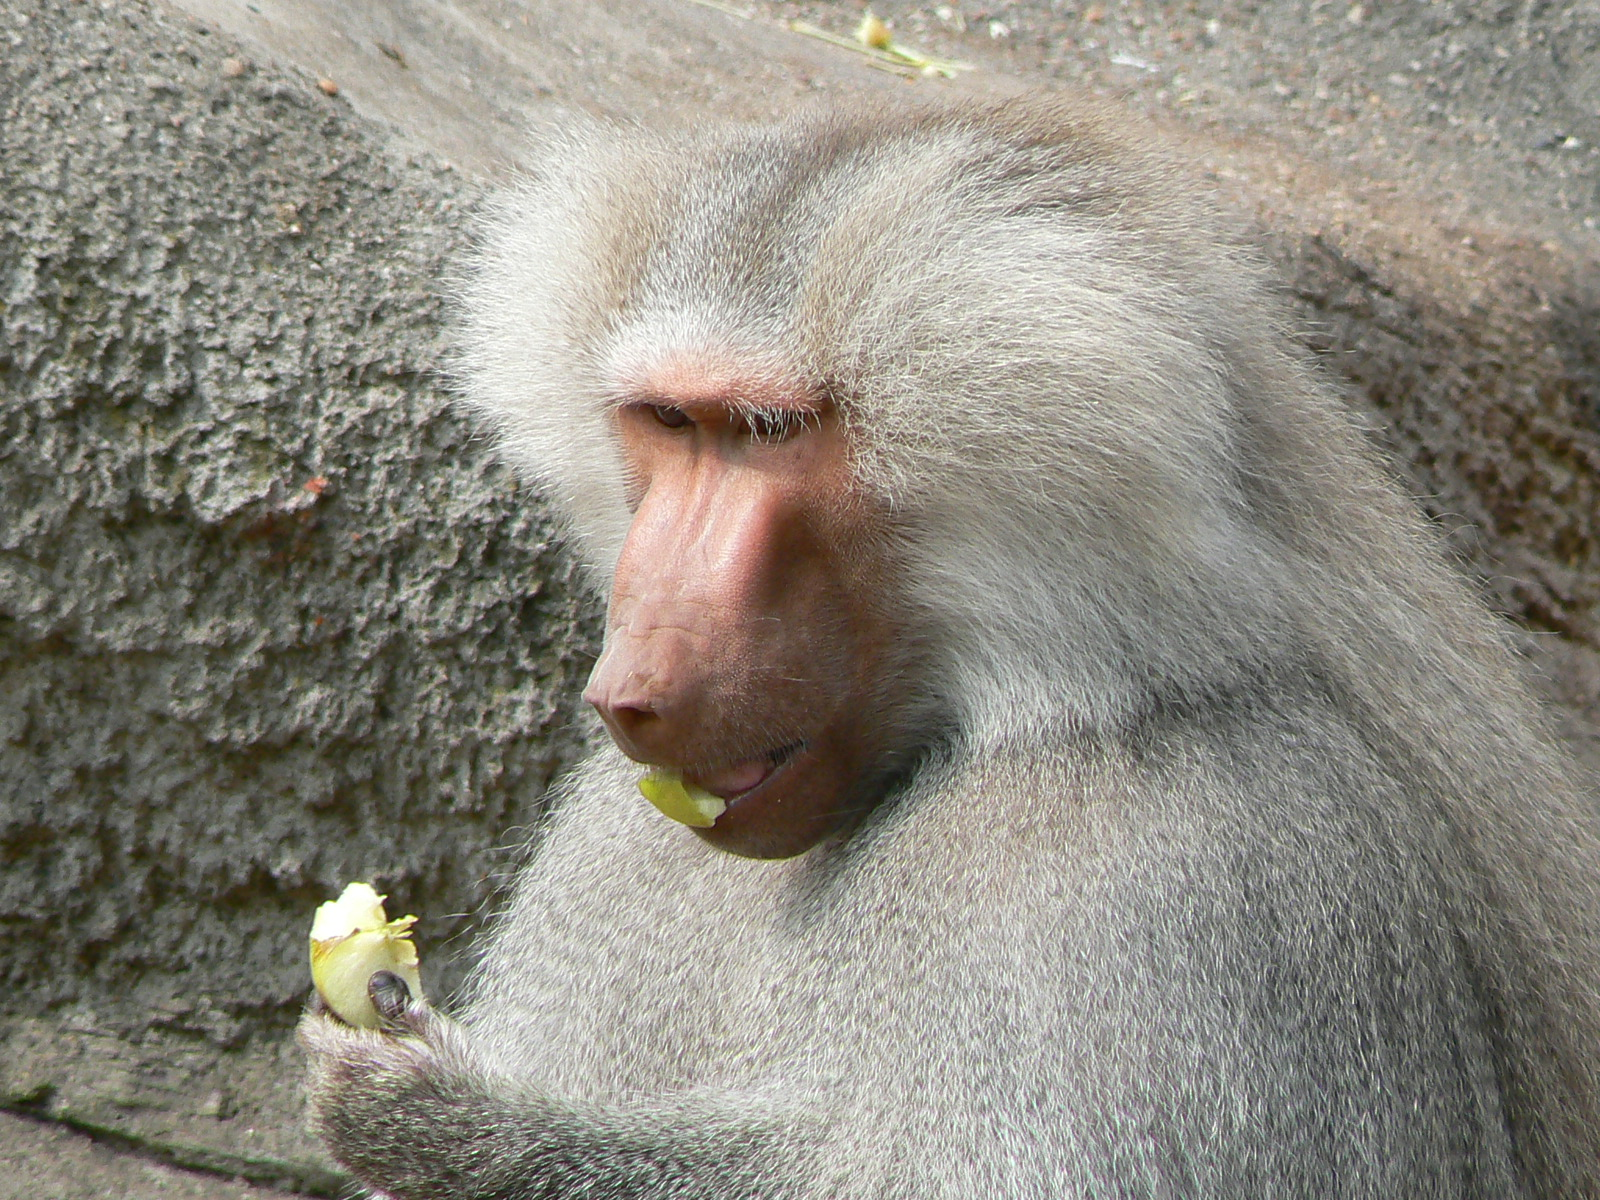 Hamadryas Baboon eating an apple